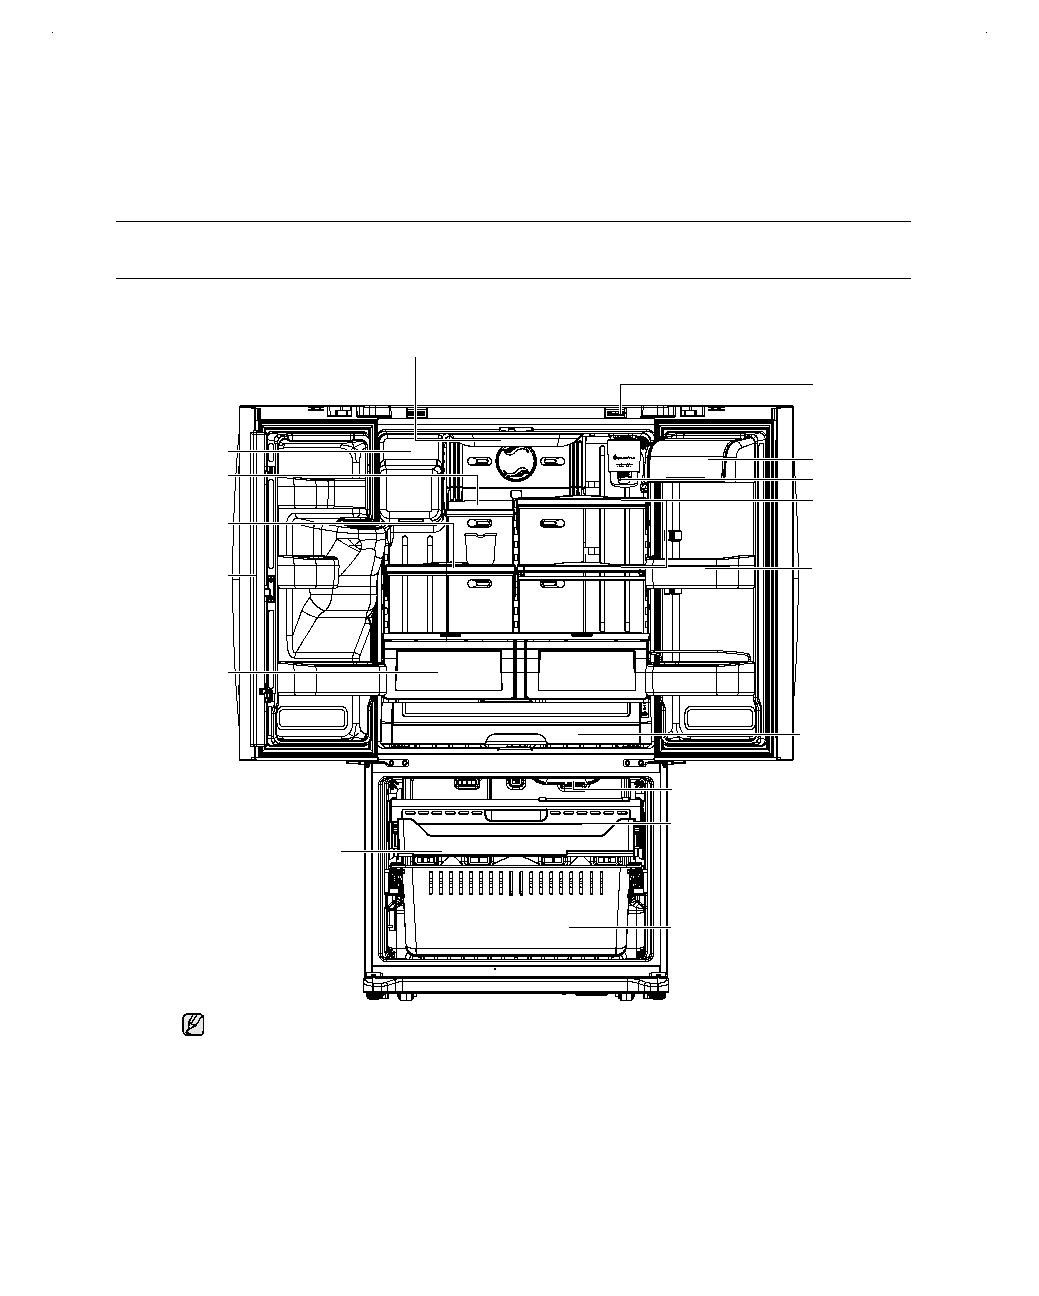 Wiring Diagrams For Frigidaire Refrigerators Frigidaire